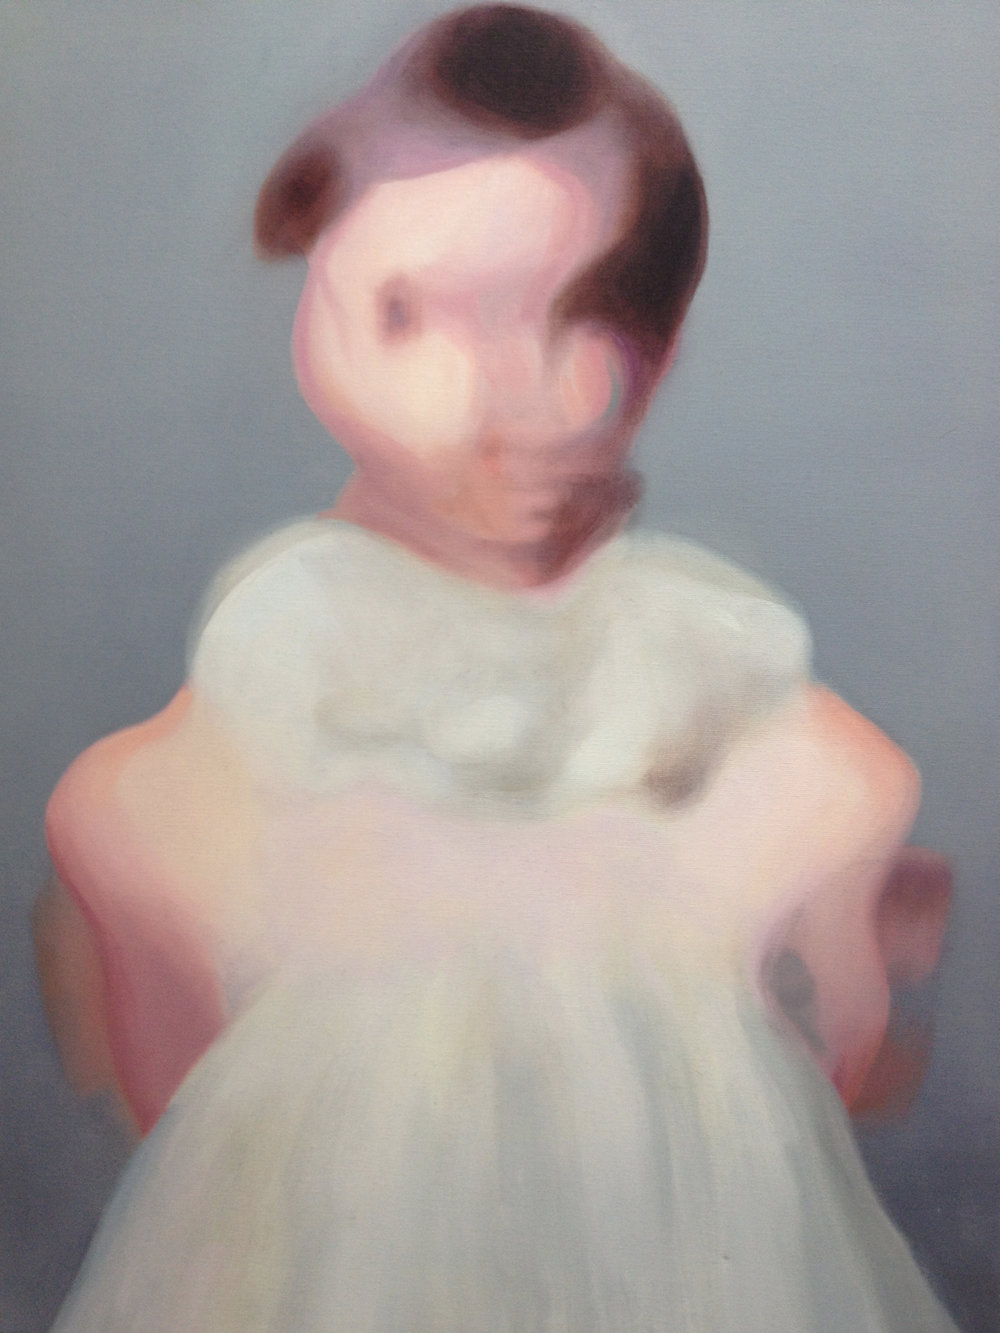 01.The Dress_Oil on canvas_2012_18x24,Nissenbaum.JPG